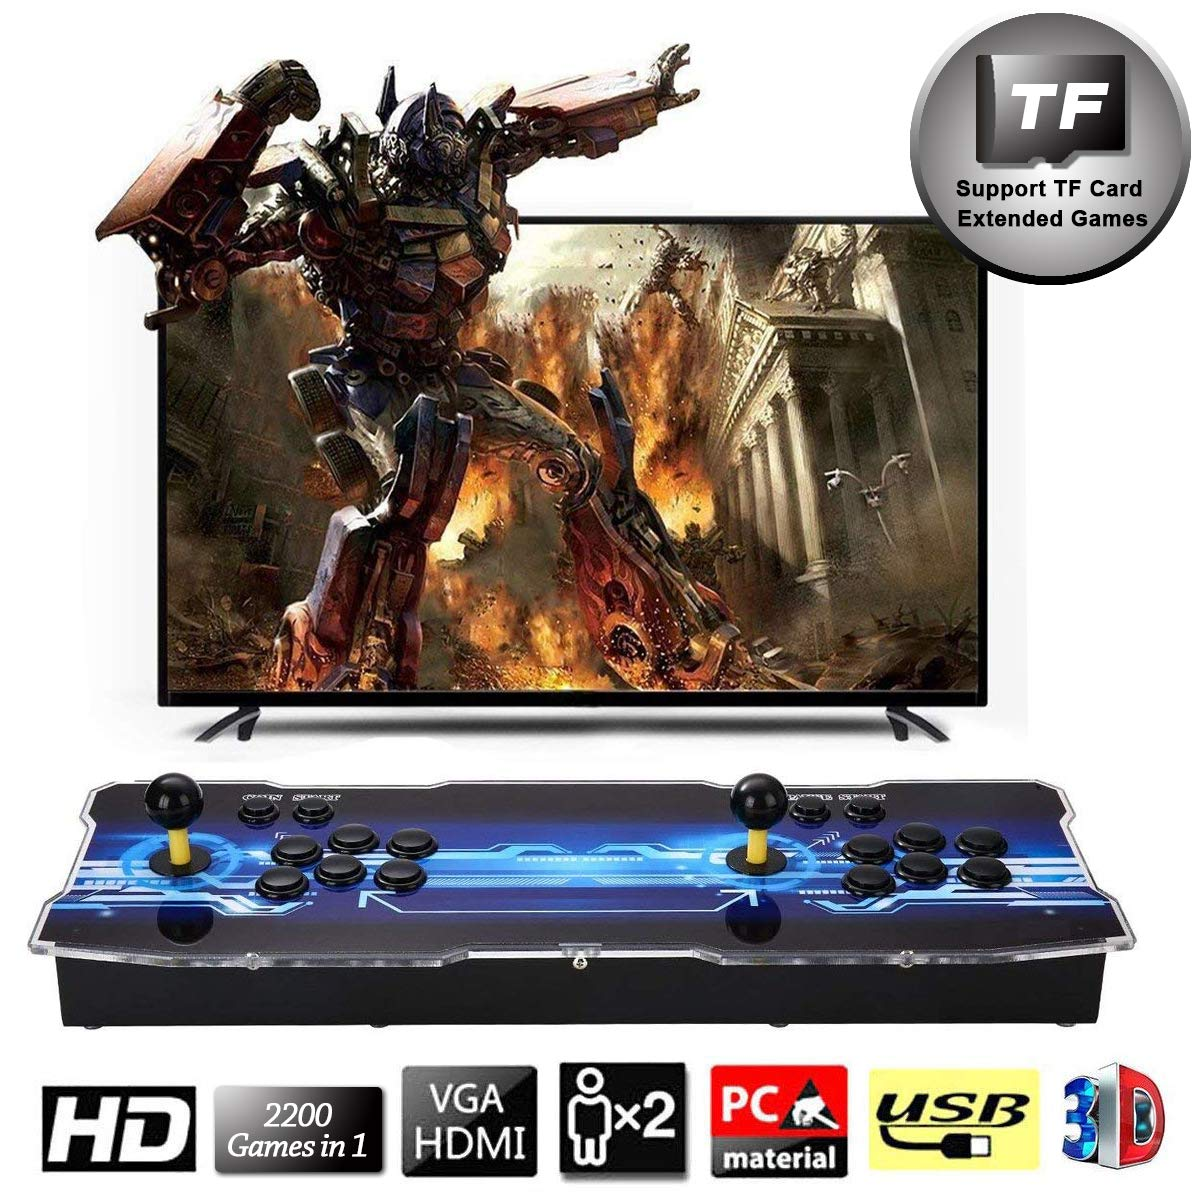 SeeKool Newest 3D Pandora X Arcade Game Console, 1920x1080 Full HD 4 Players Max Arcade Machine with 2200 Games, Support Extended TF Card& USB Disk to Enjoy More Games PC / Laptop / TV / PS3 by SeeKool (Image #1)